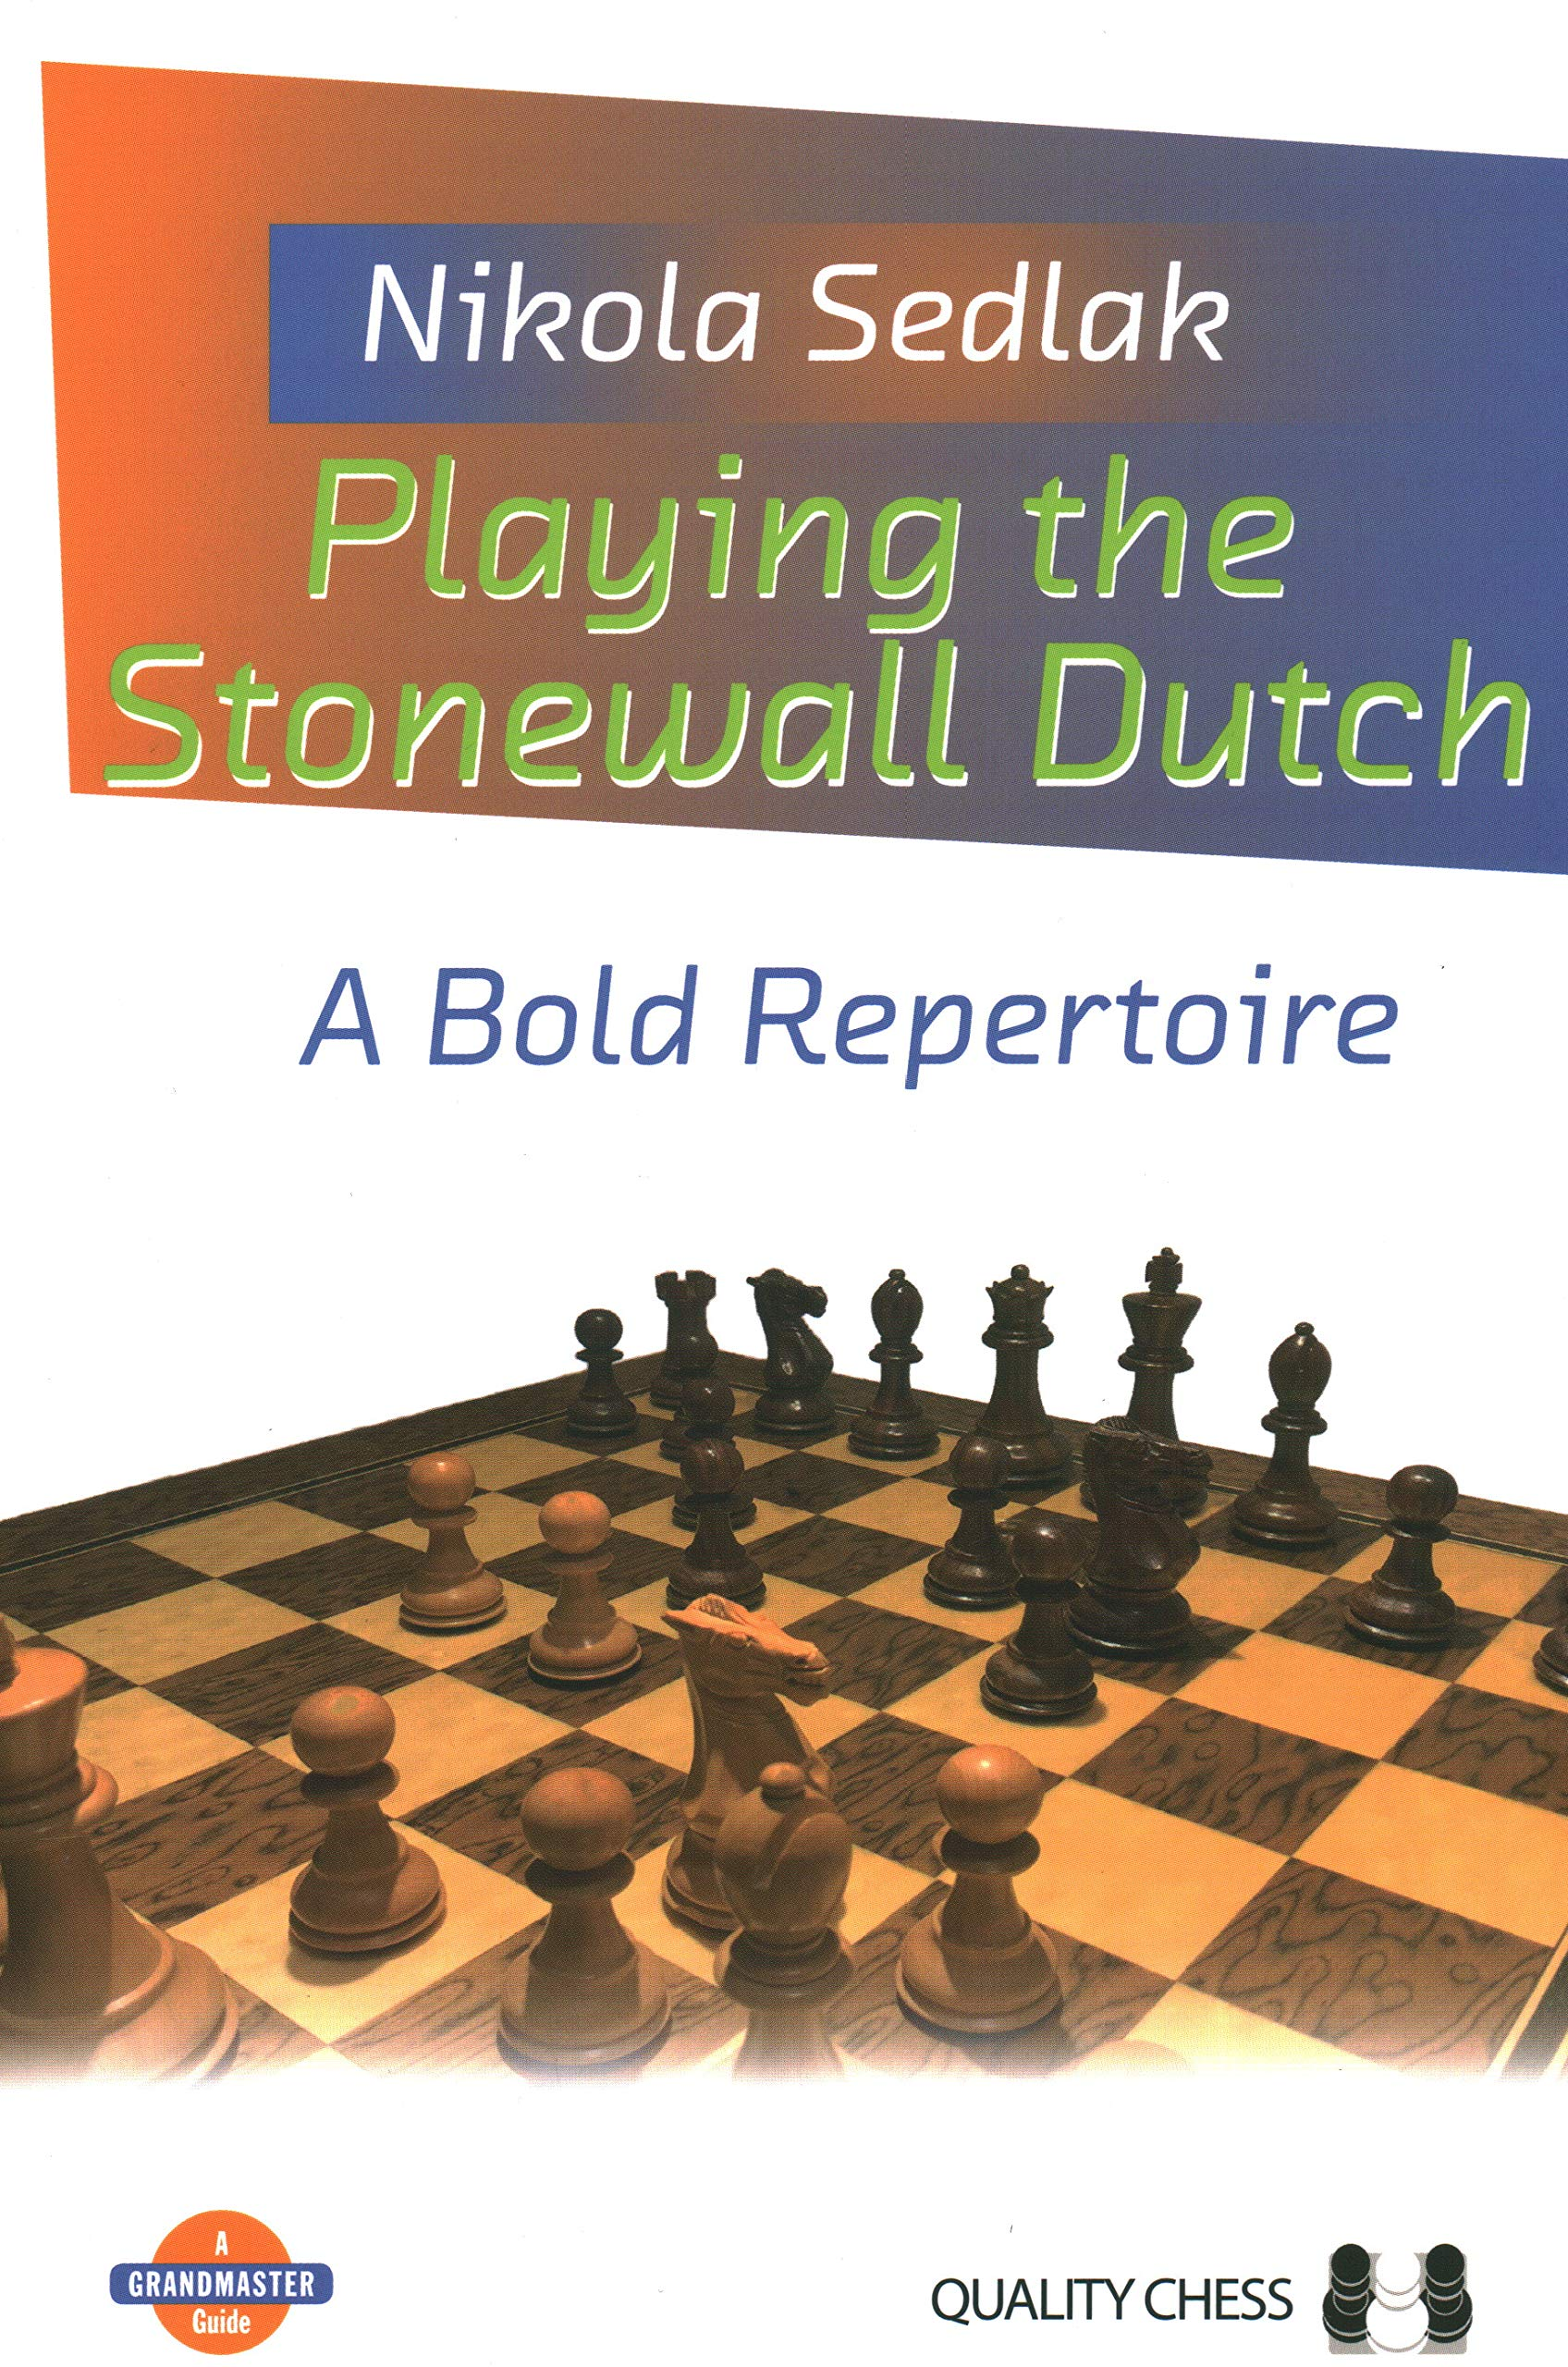 Playing the Stonewall Dutch, Nikola Sedlak, Quality Chess, July 2020, ISBN-10 : 1784831093